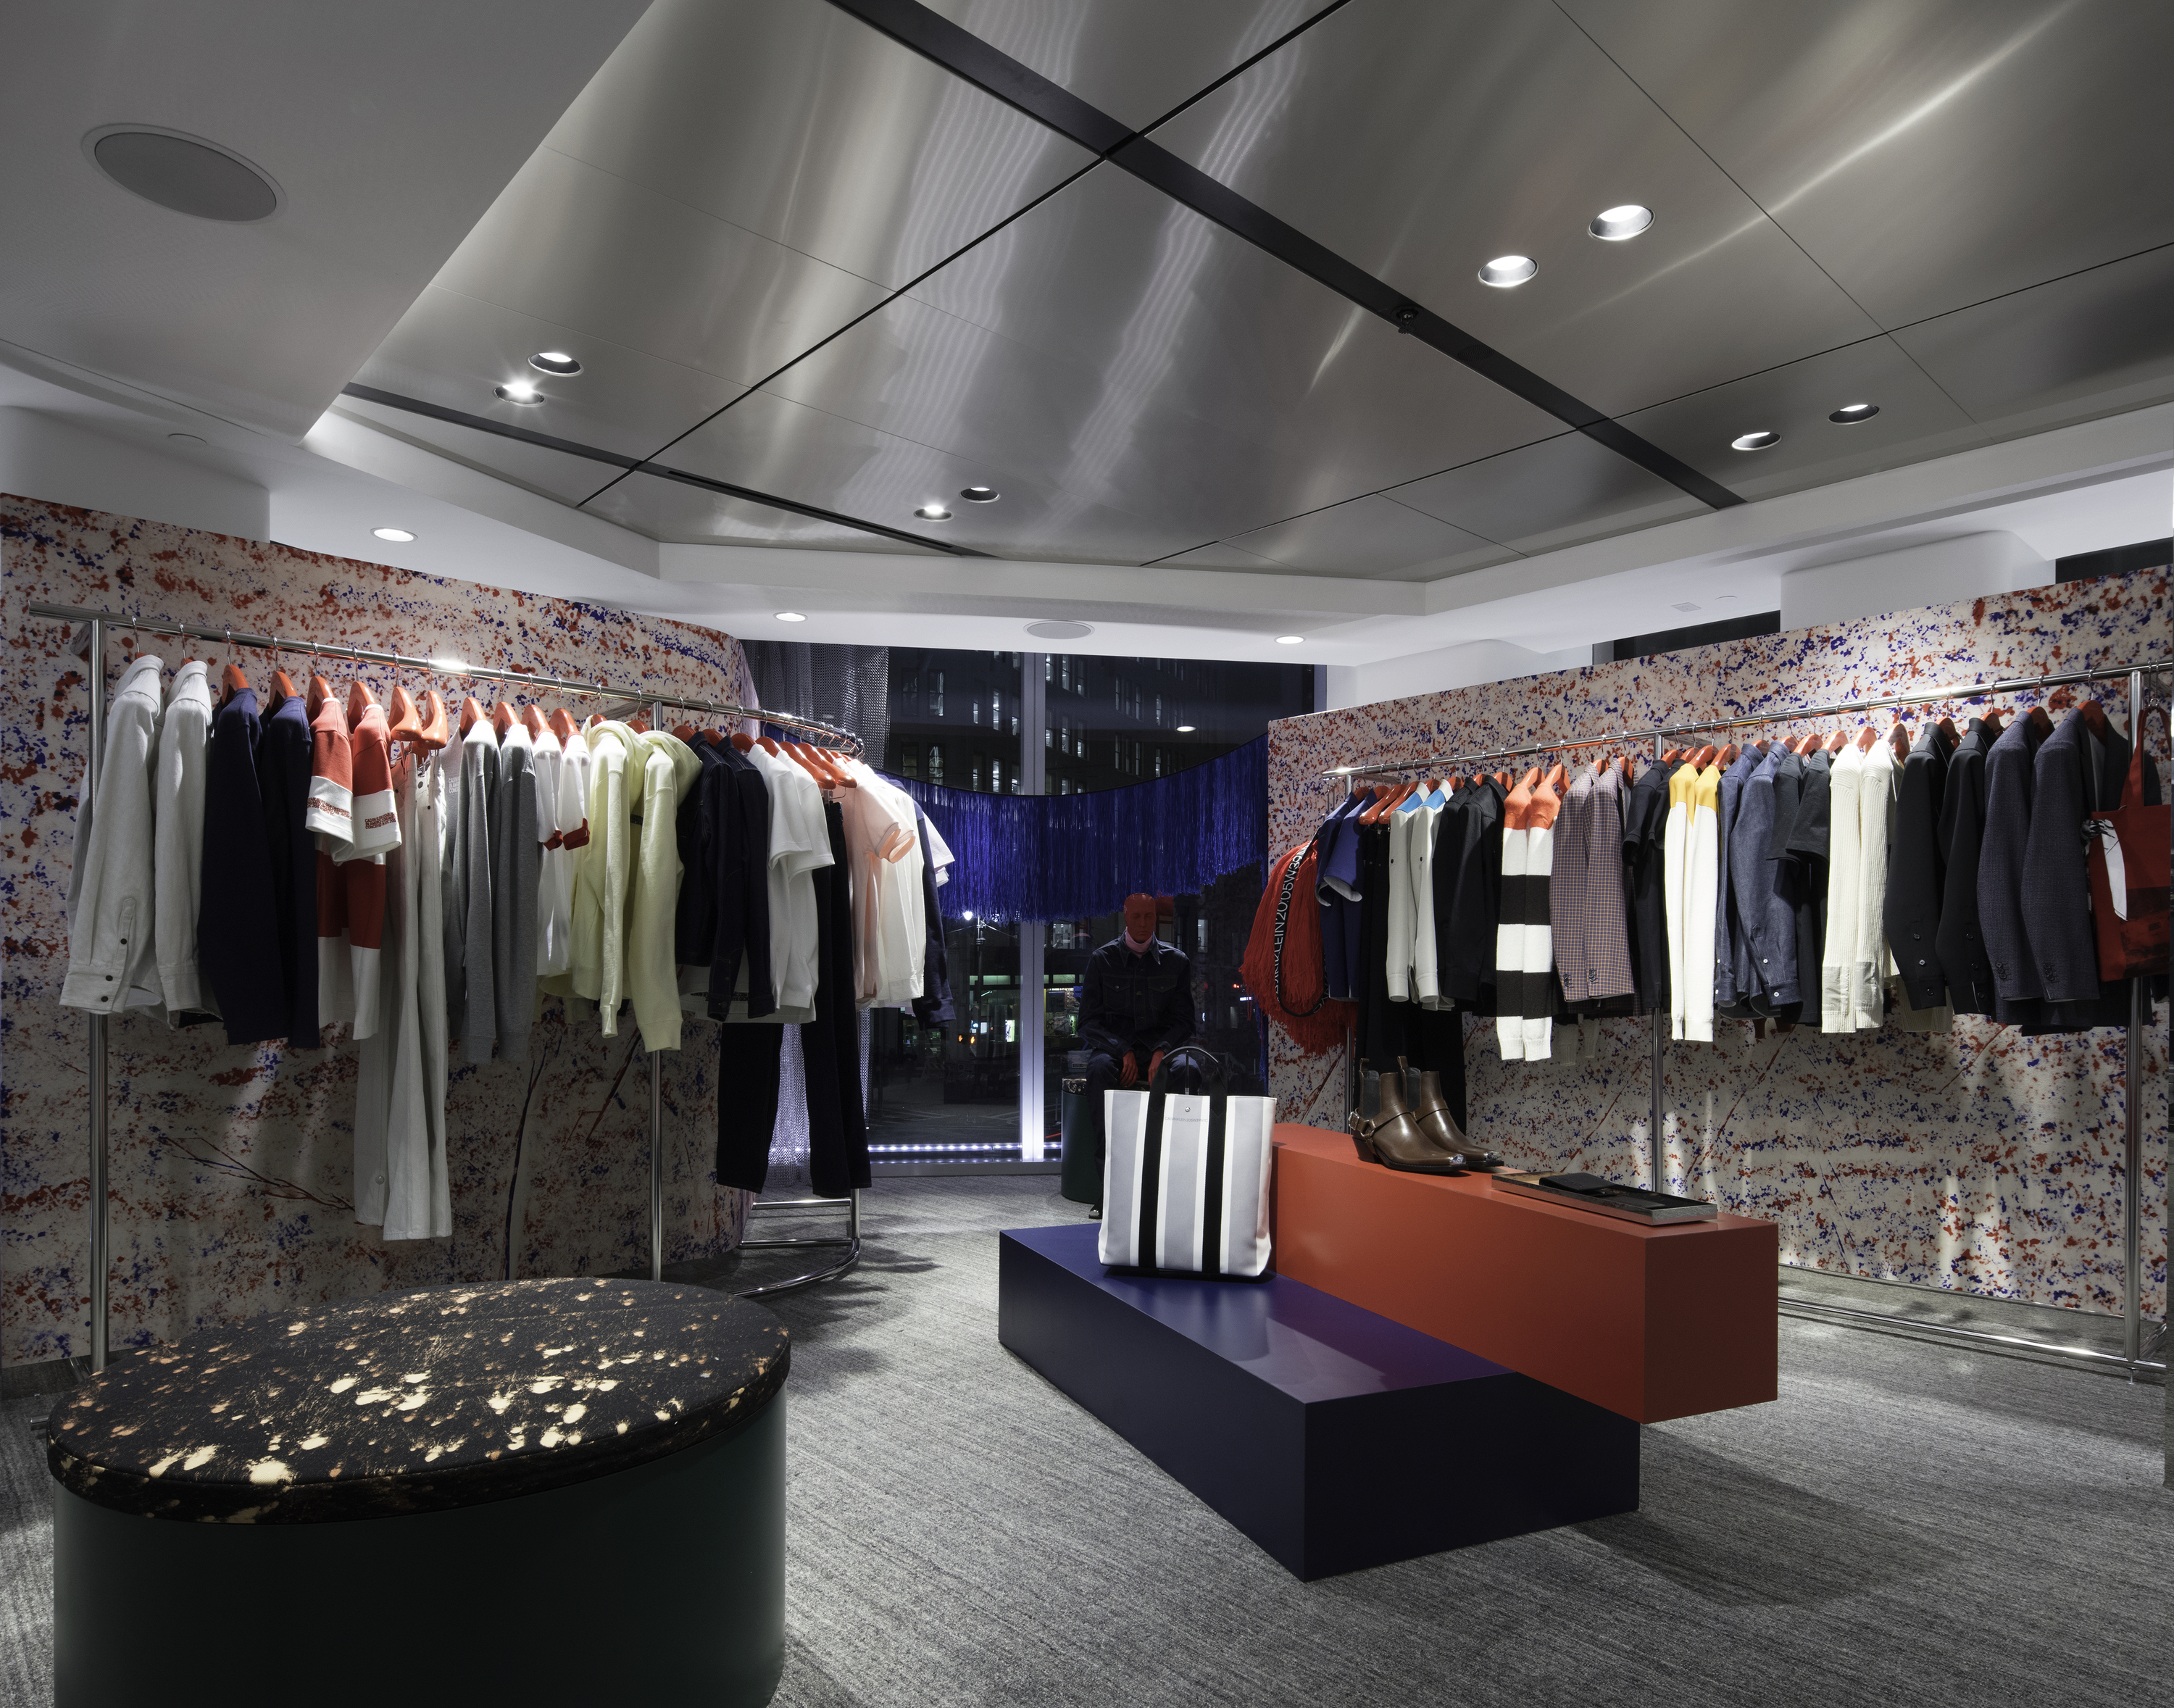 8a96e930ae7 Best Department Stores in NYC to Shop for Clothing and More